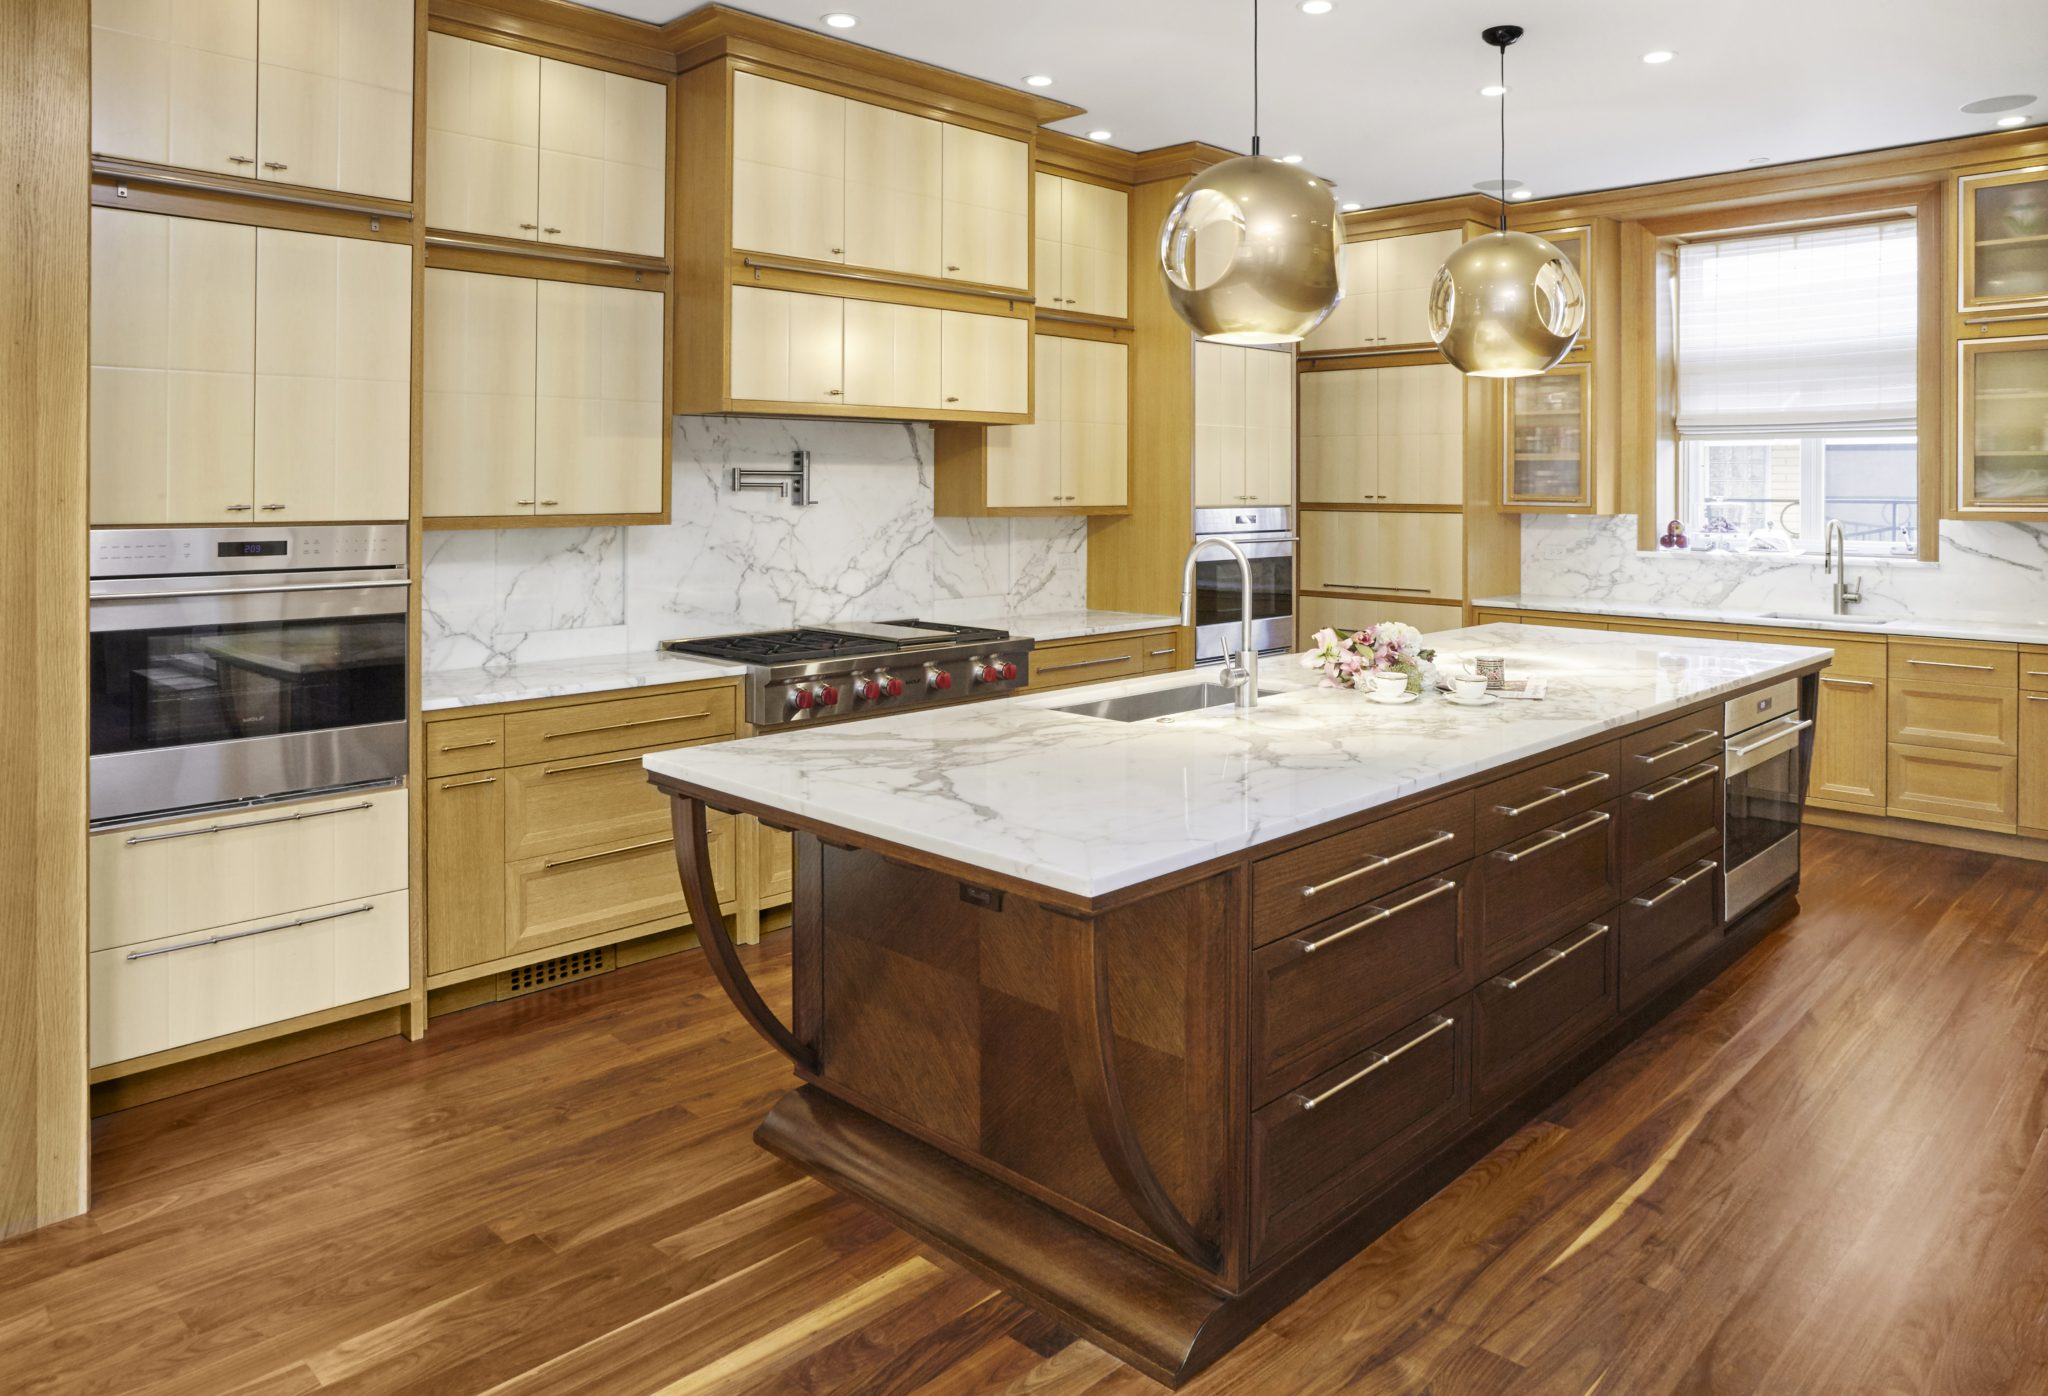 Art Deco kitchen with oak and birch cabinets, marble countertop and backsplash by Randall Architects, Inc.